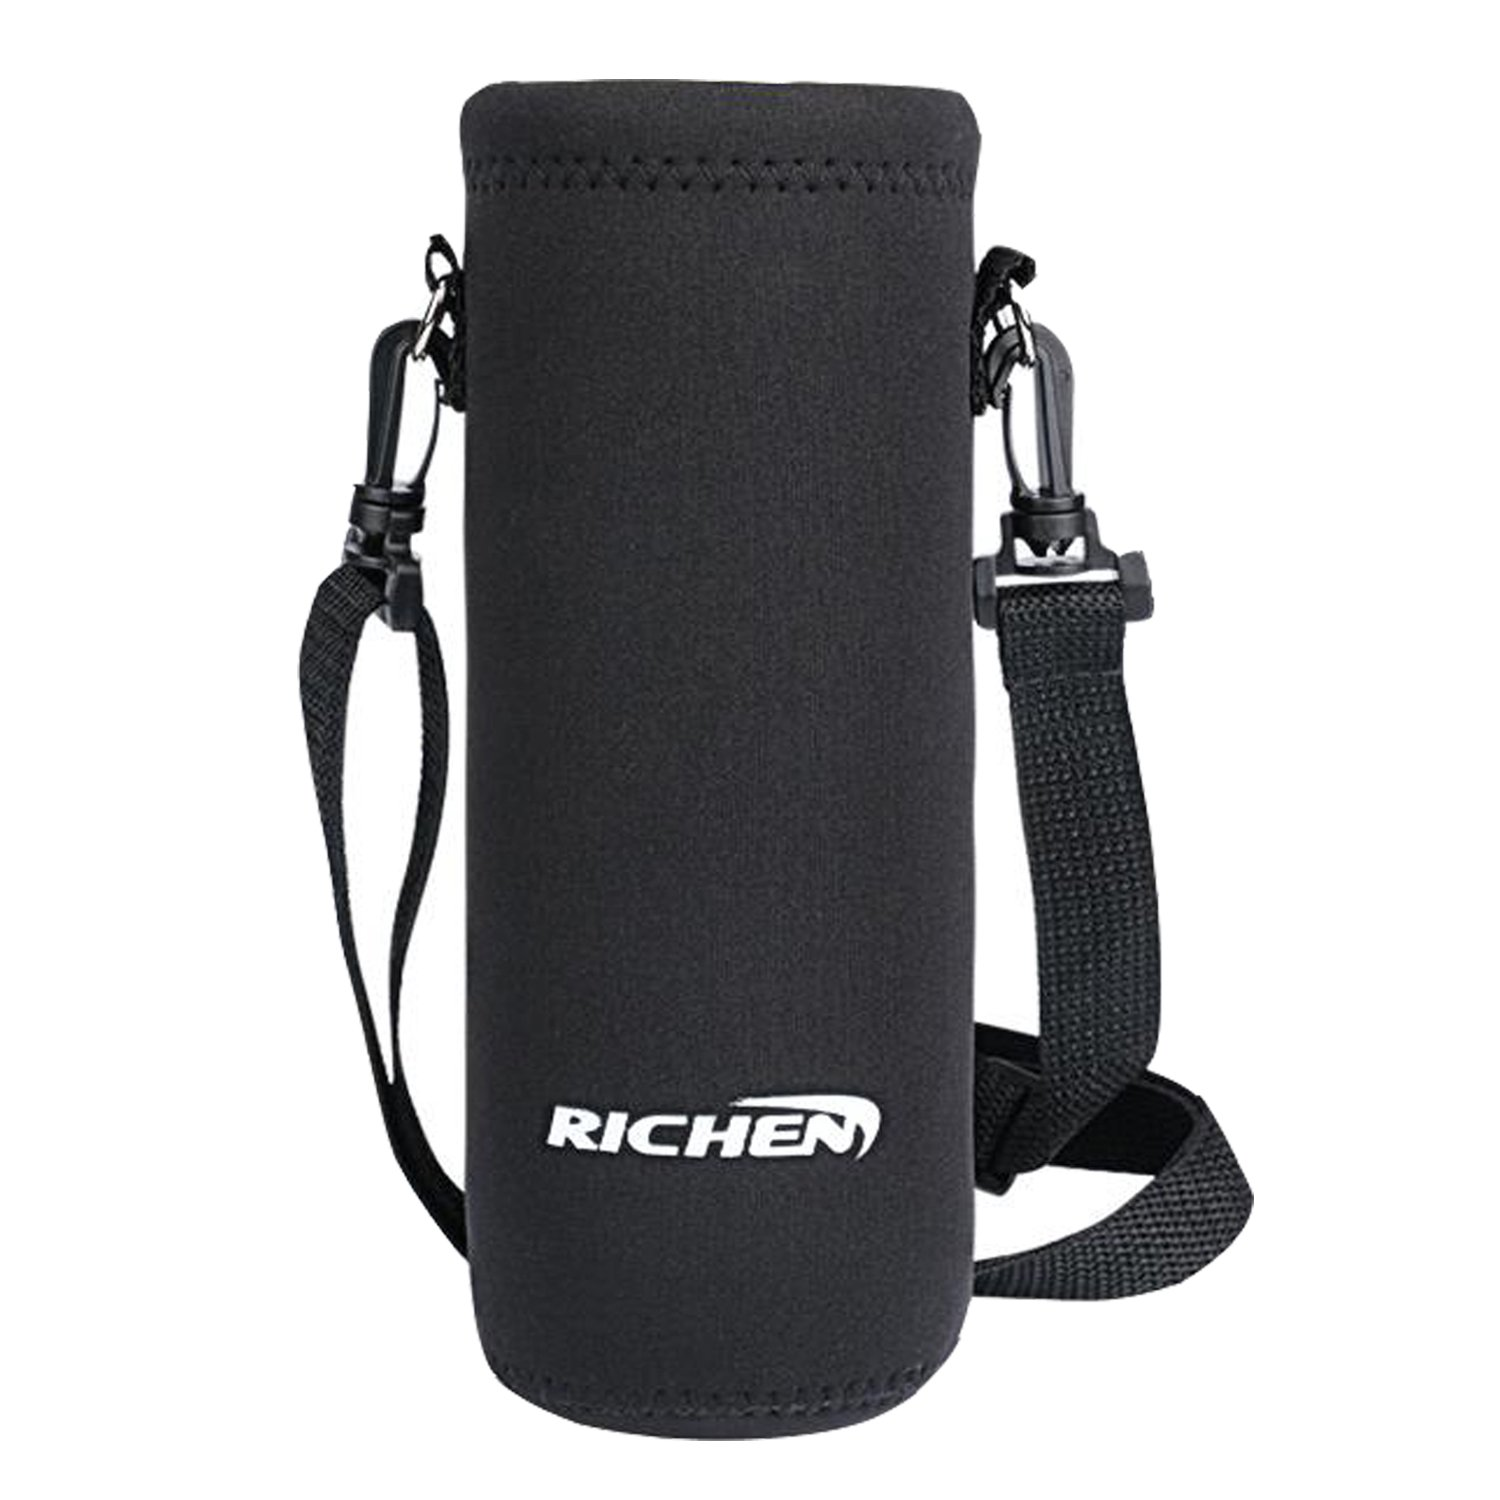 Richen Insulated Water//Wine//Tea Bottle Carrier Sling Bag Pouch Case with Shoulder Strap,Bottle Holder Cross-Body Shoulder Bag for Outdoor Sports Camping Travel,Black